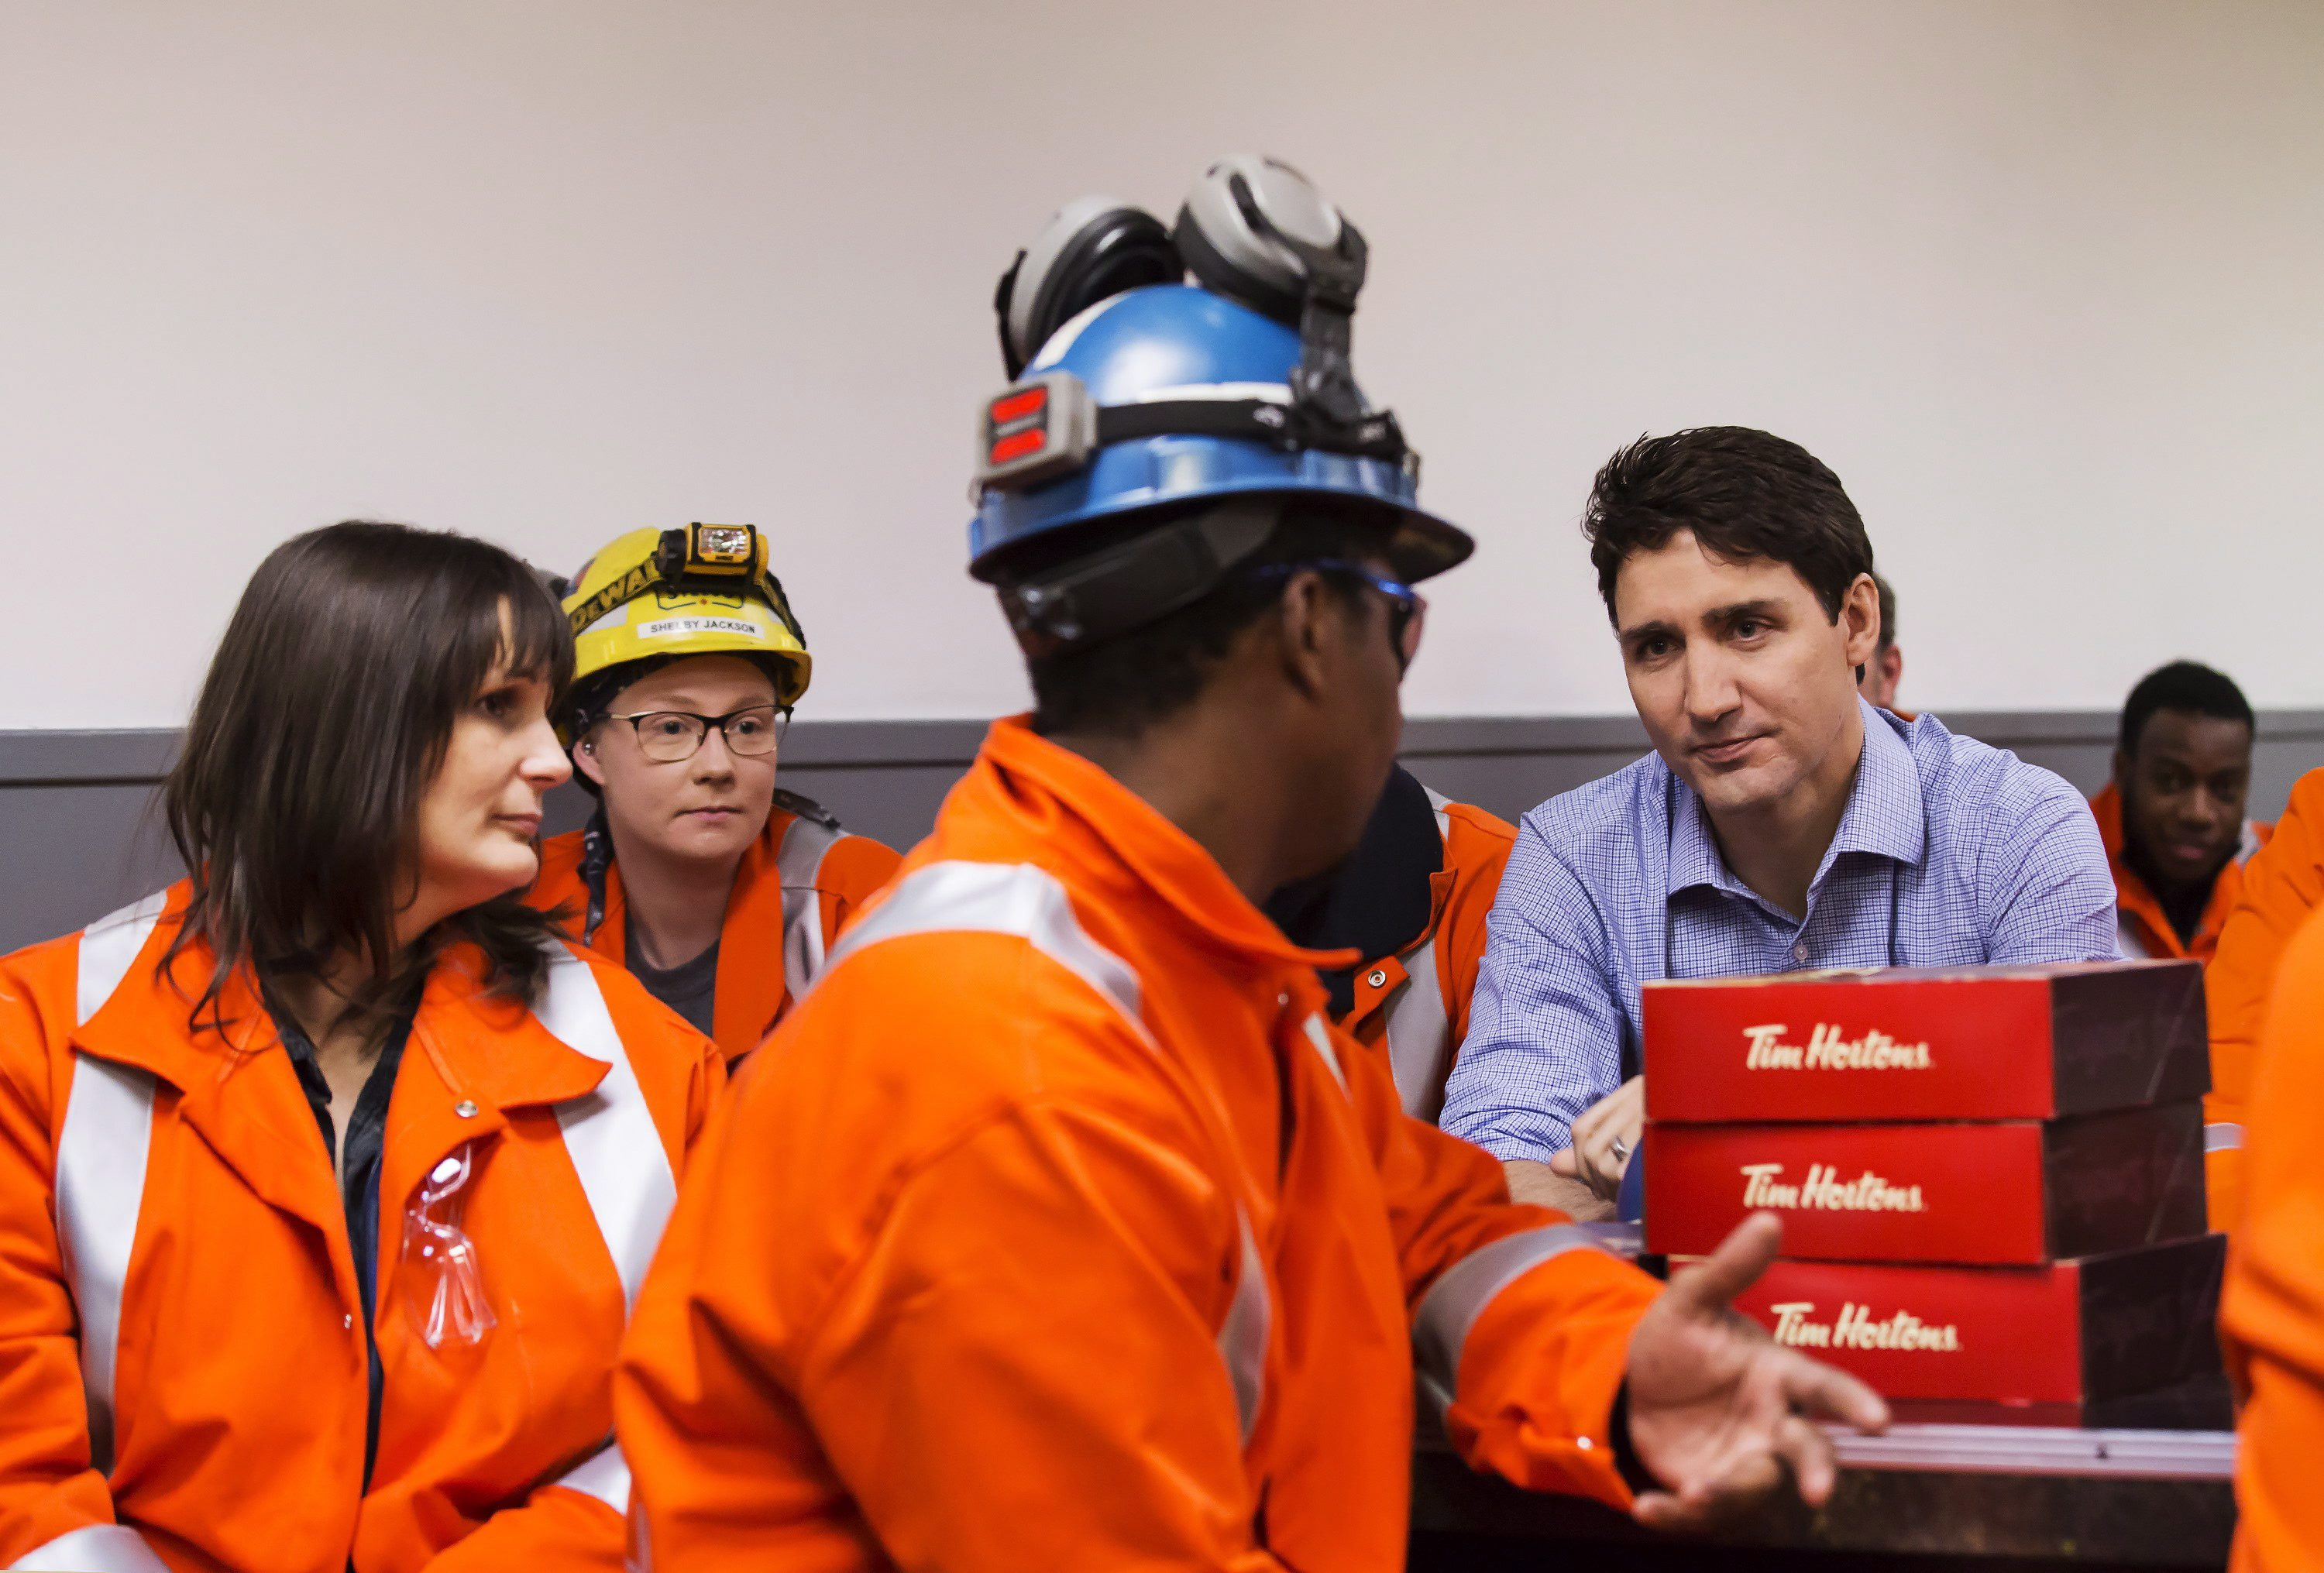 Justin Trudeau visiting Hamilton to show support for steel workers